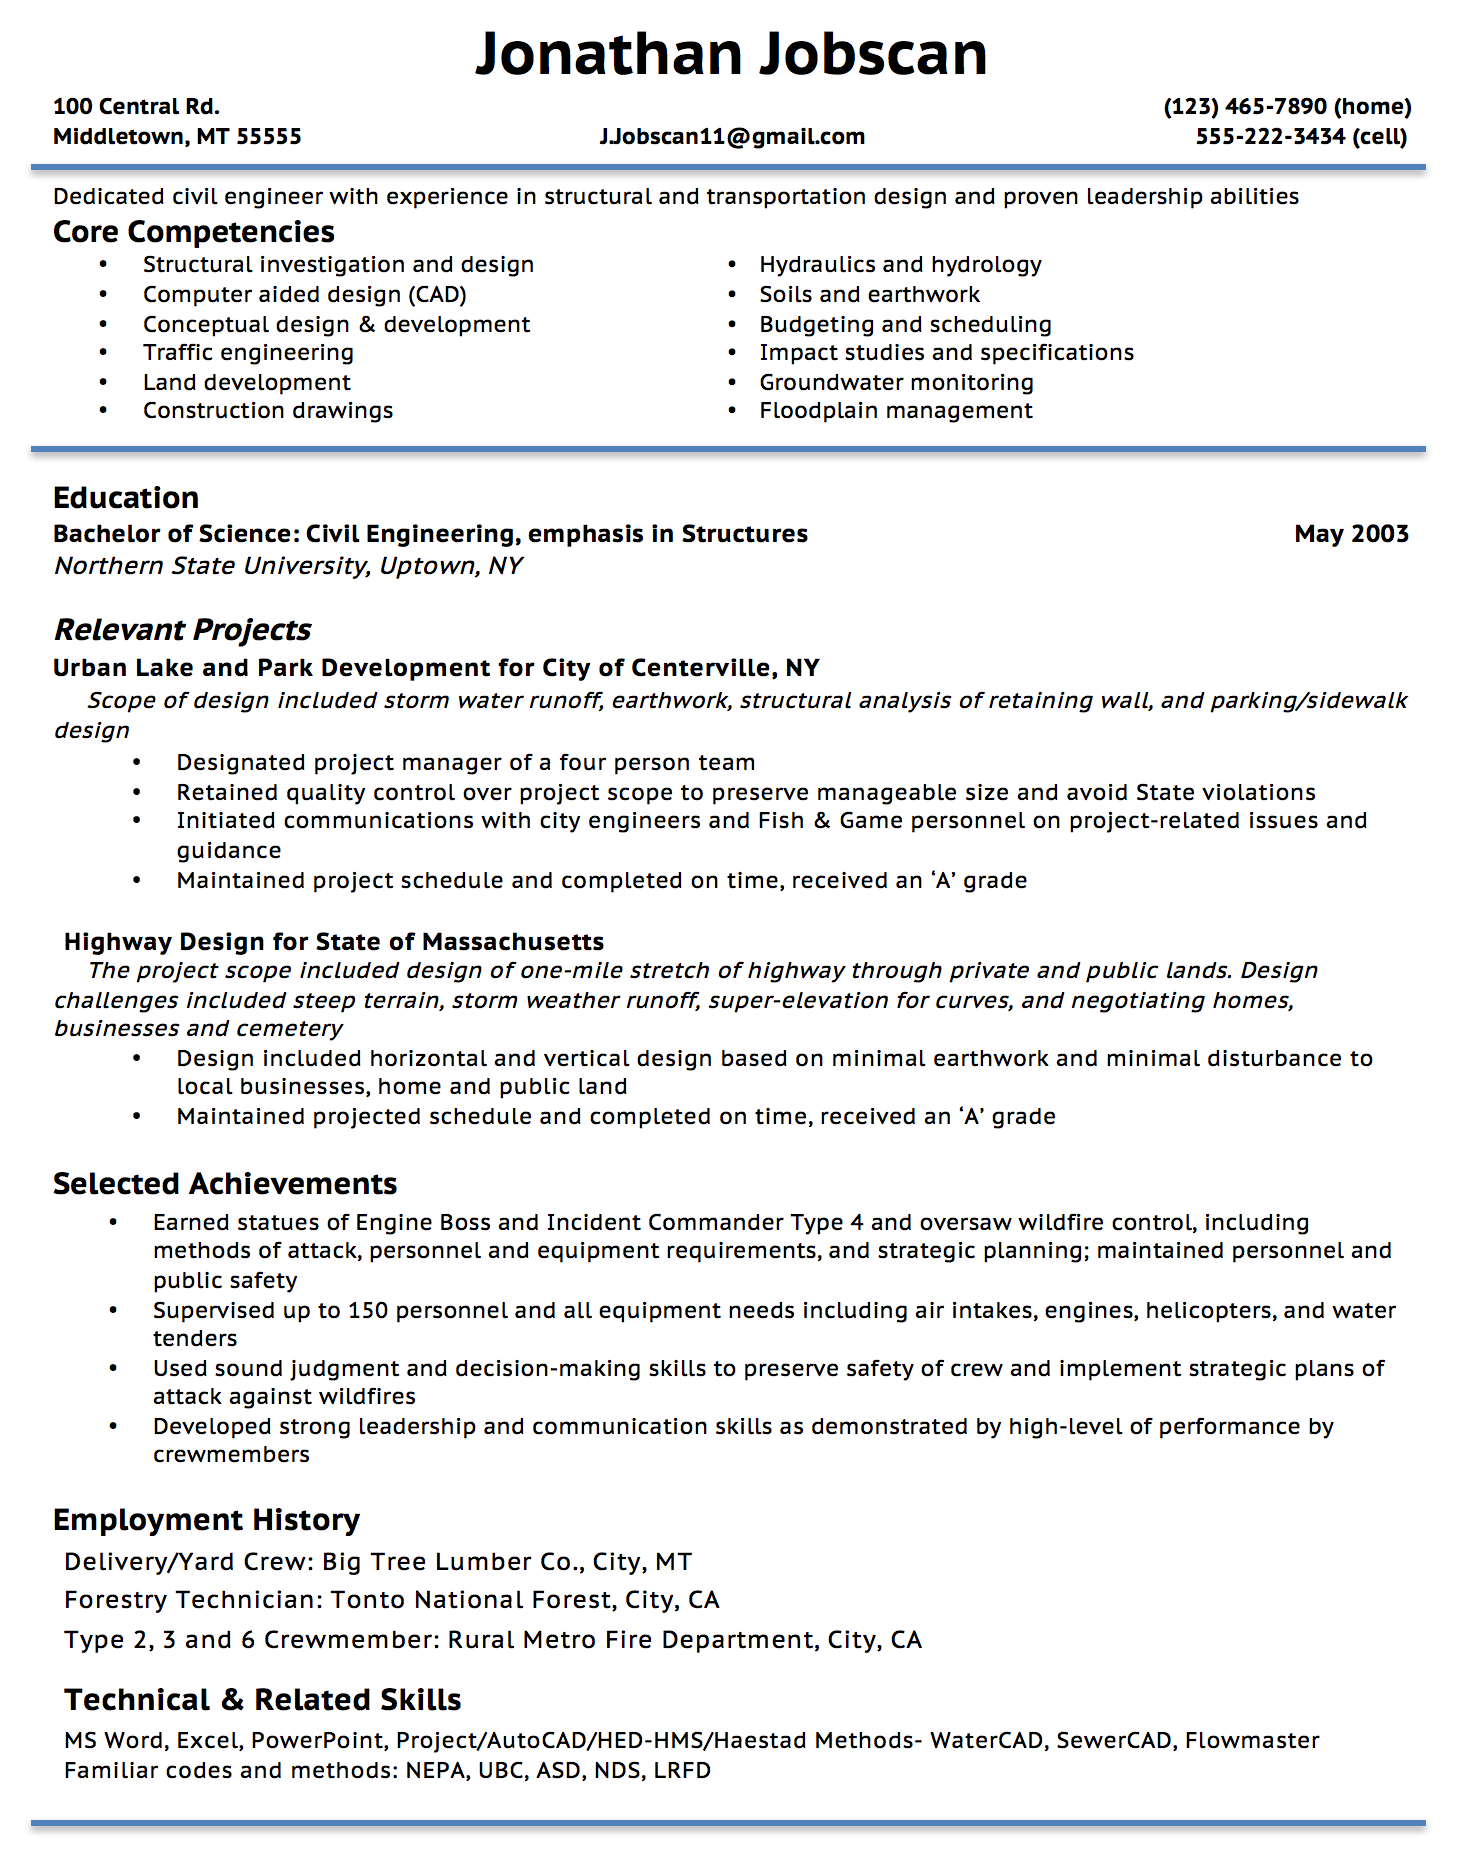 Opposenewapstandardsus  Winning Resume Writing Guide  Jobscan With Heavenly Example Of A Functional Resume Format With Extraordinary Teaching Resume Also Good Resume Objectives In Addition Action Words For Resume And How To Spell Resume As Well As What To Include In A Resume Additionally Building A Resume From Jobscanco With Opposenewapstandardsus  Heavenly Resume Writing Guide  Jobscan With Extraordinary Example Of A Functional Resume Format And Winning Teaching Resume Also Good Resume Objectives In Addition Action Words For Resume From Jobscanco